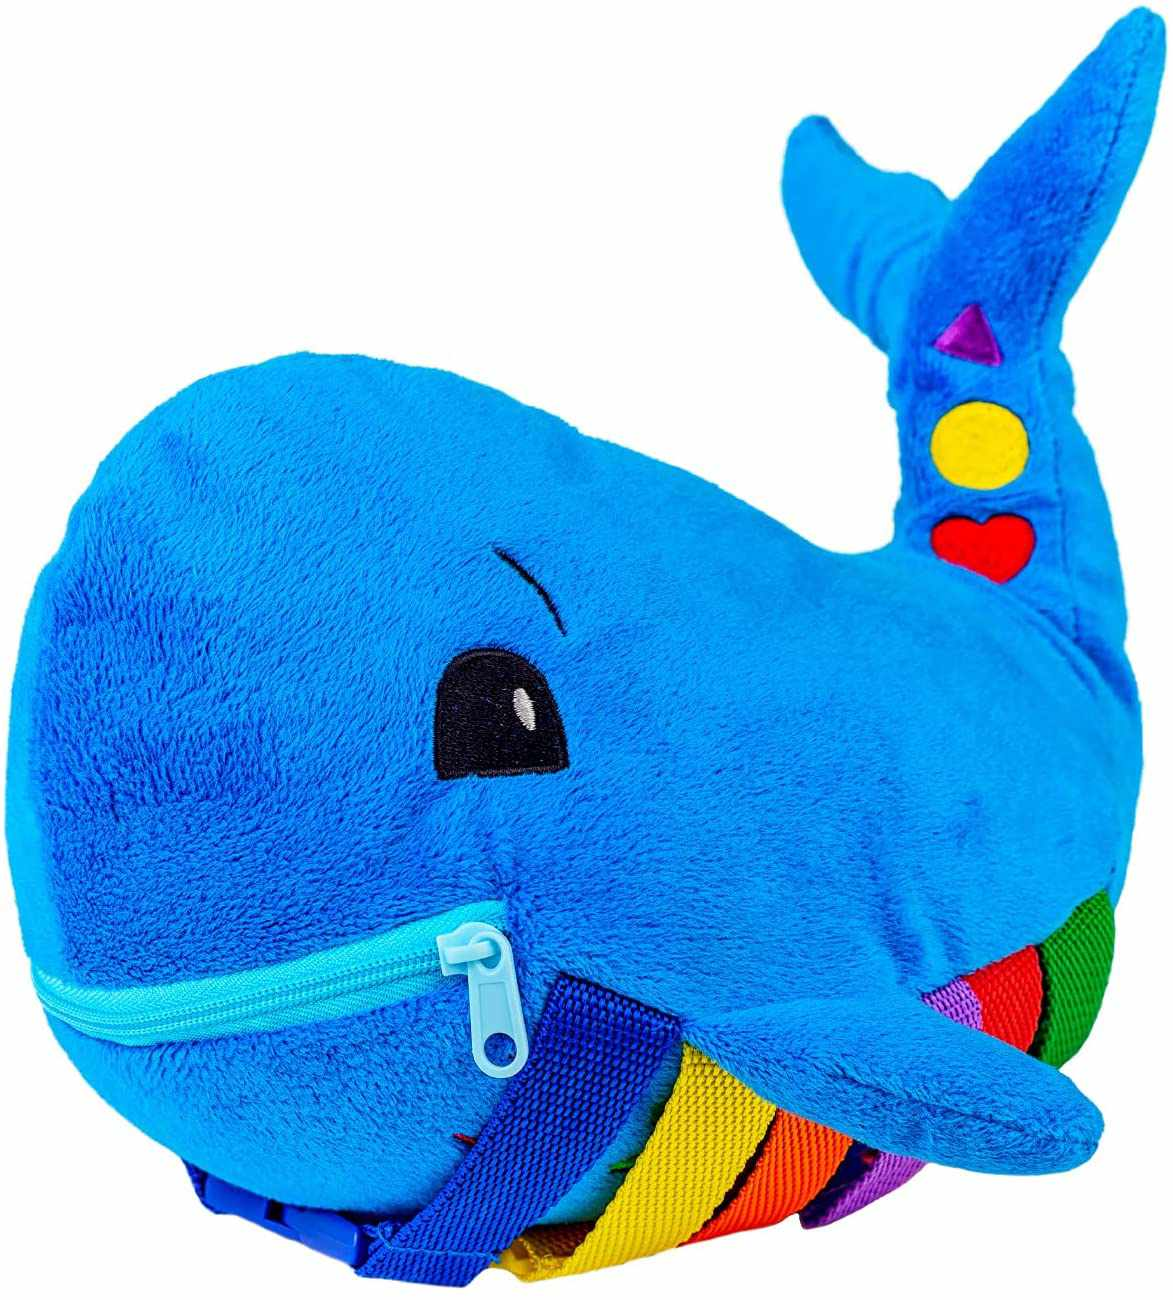 Buckle Toy Blu Whale Learning Activity Toy